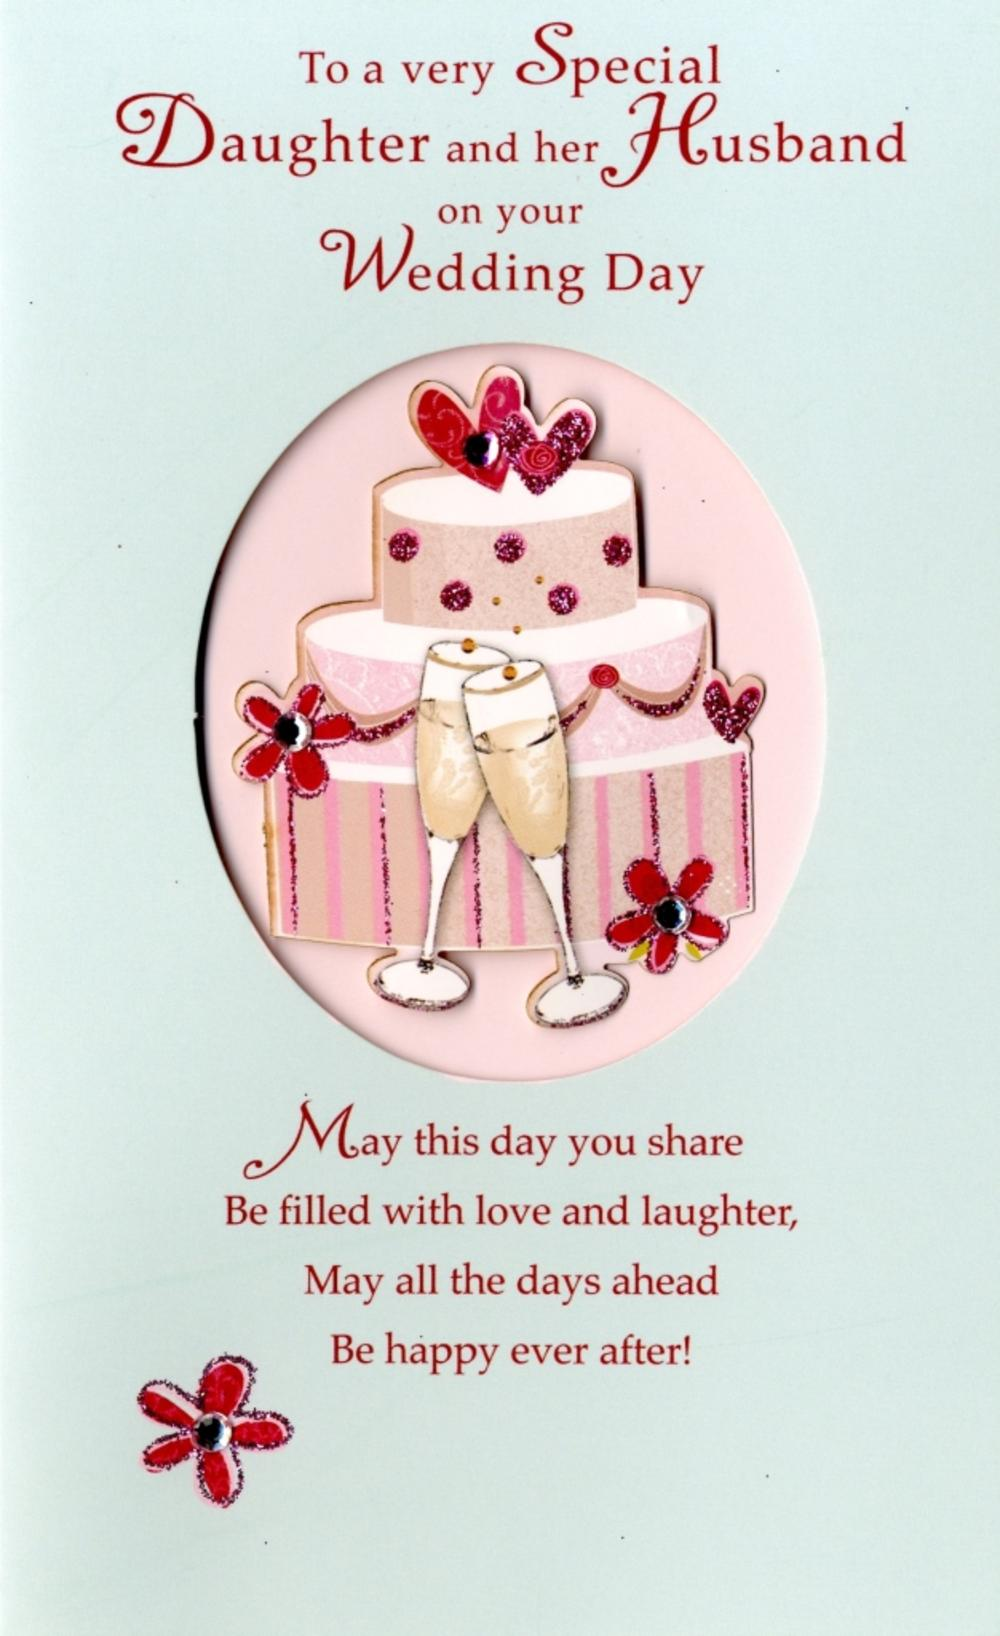 Daughter & Her Husband Wedding Day Card